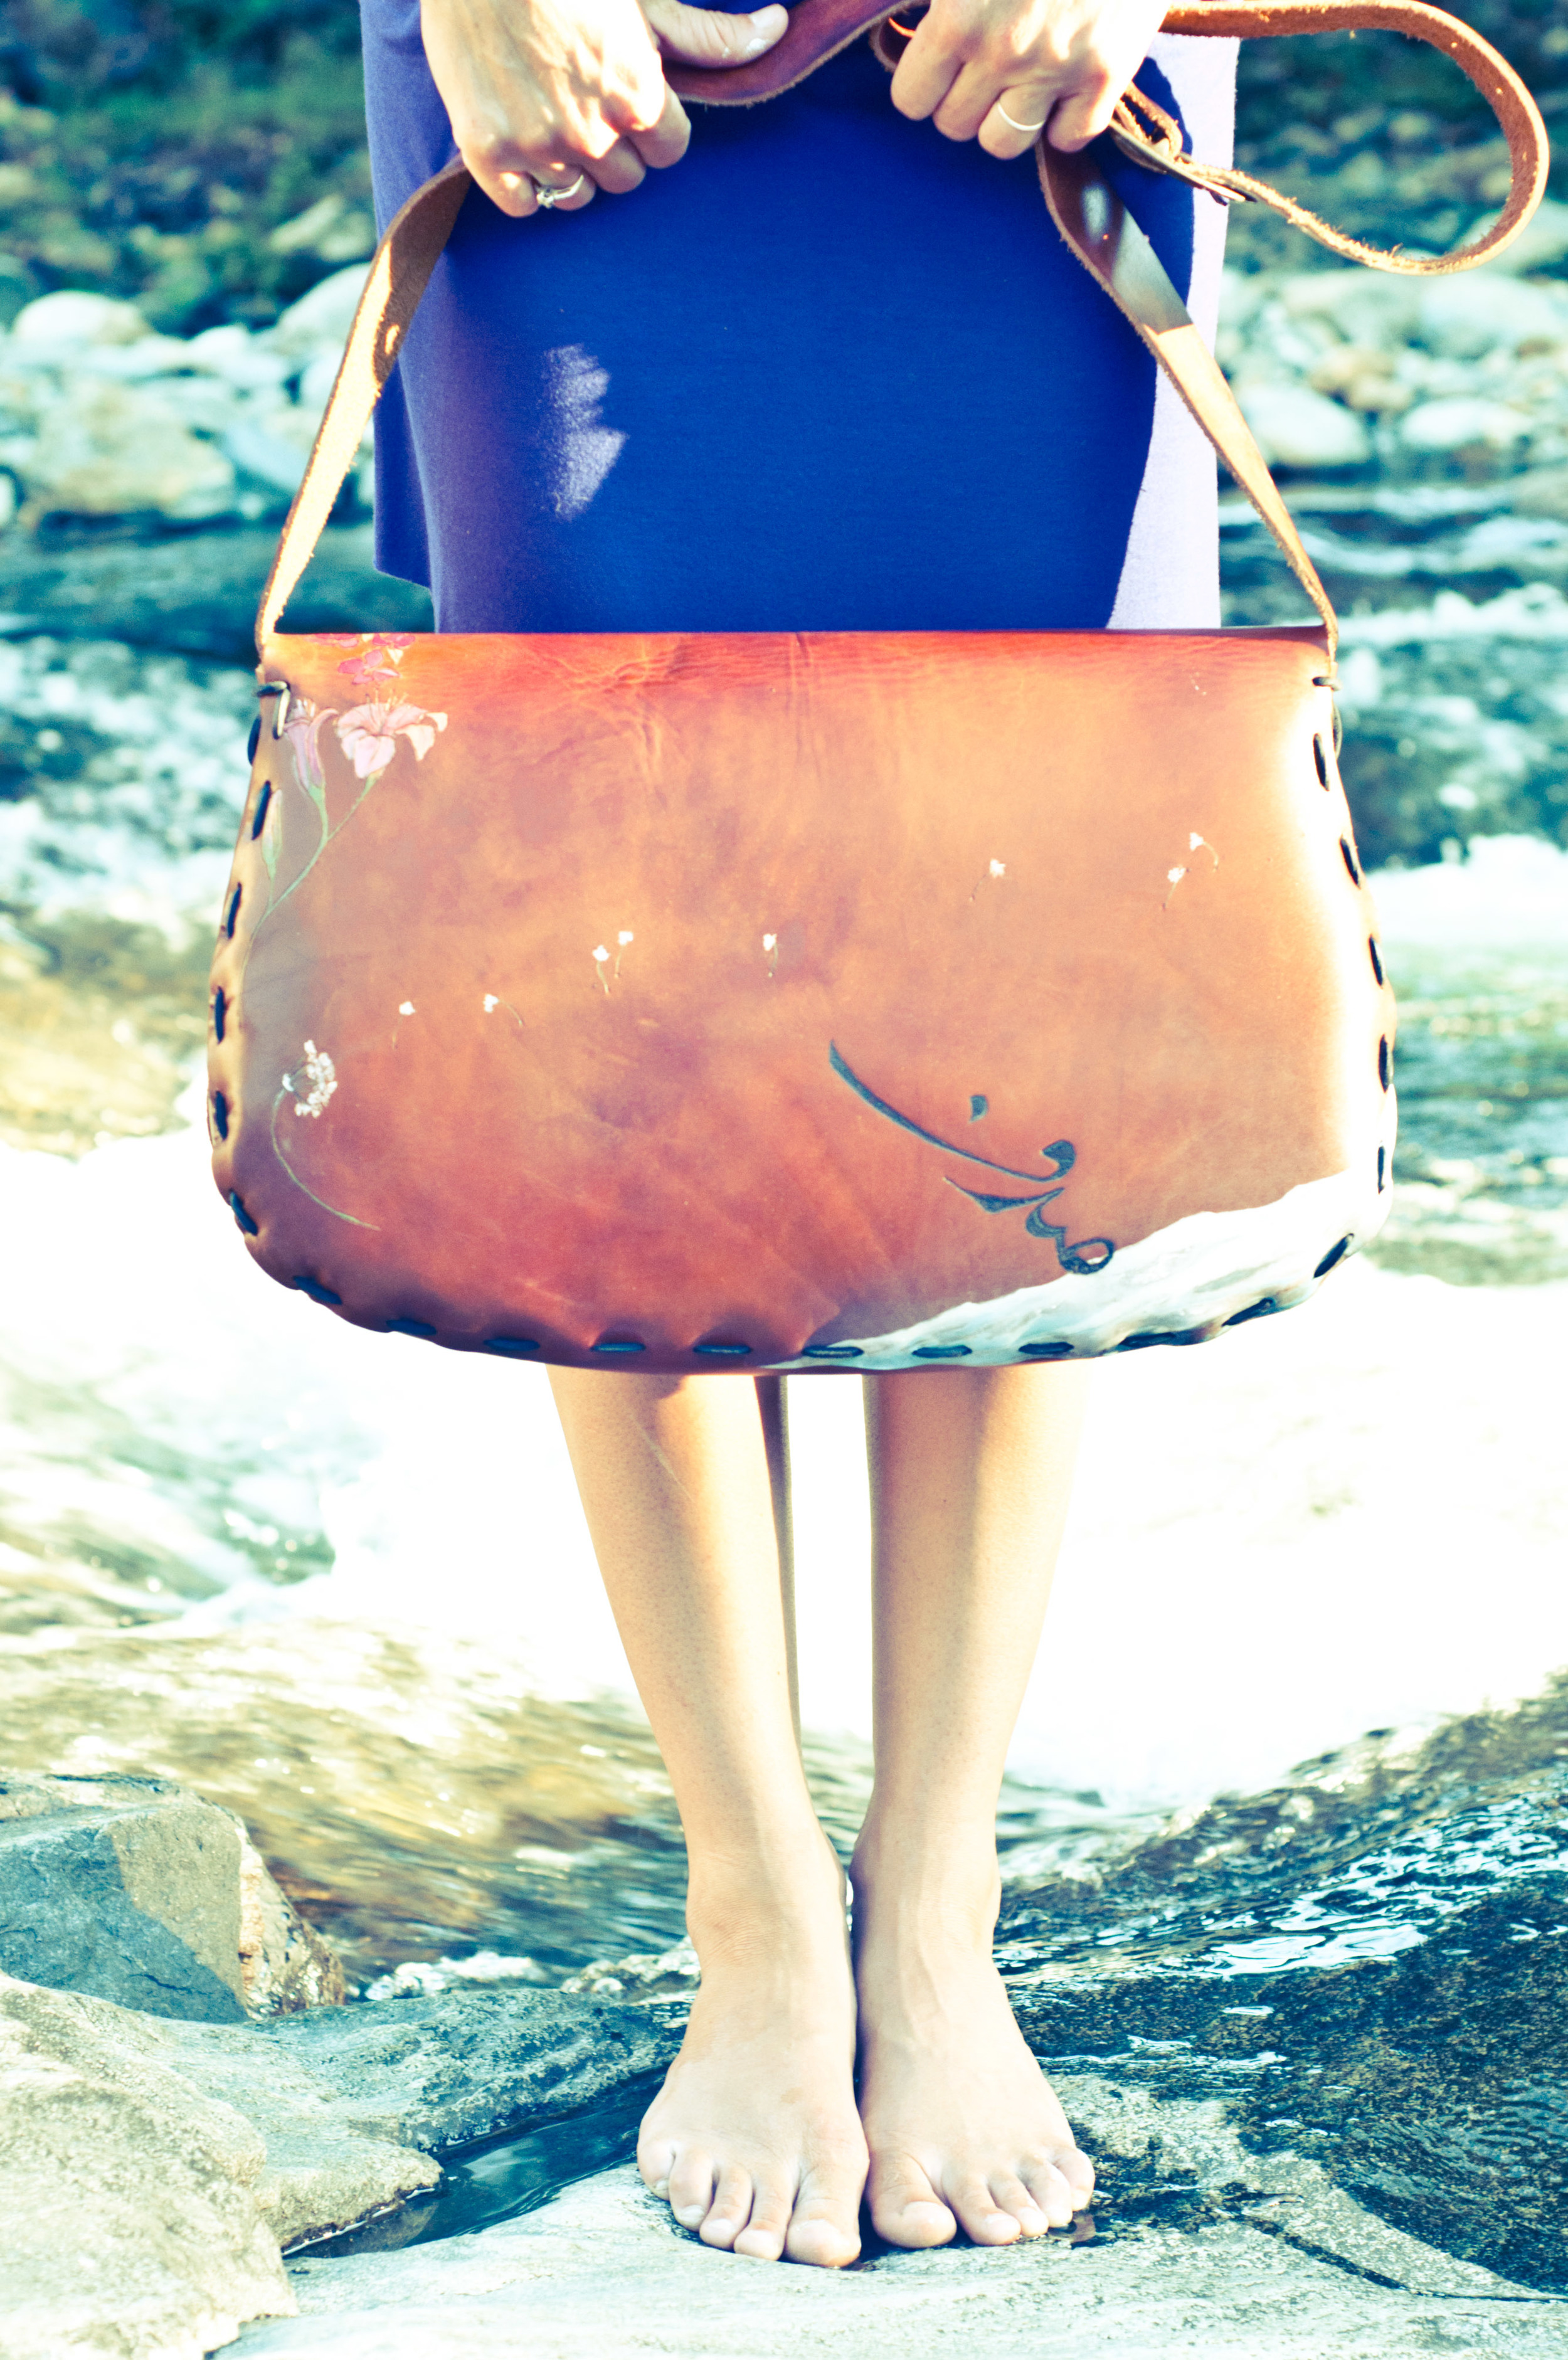 pisces-meets-taurus-mother-of-pearl-leather-bag-3.jpg